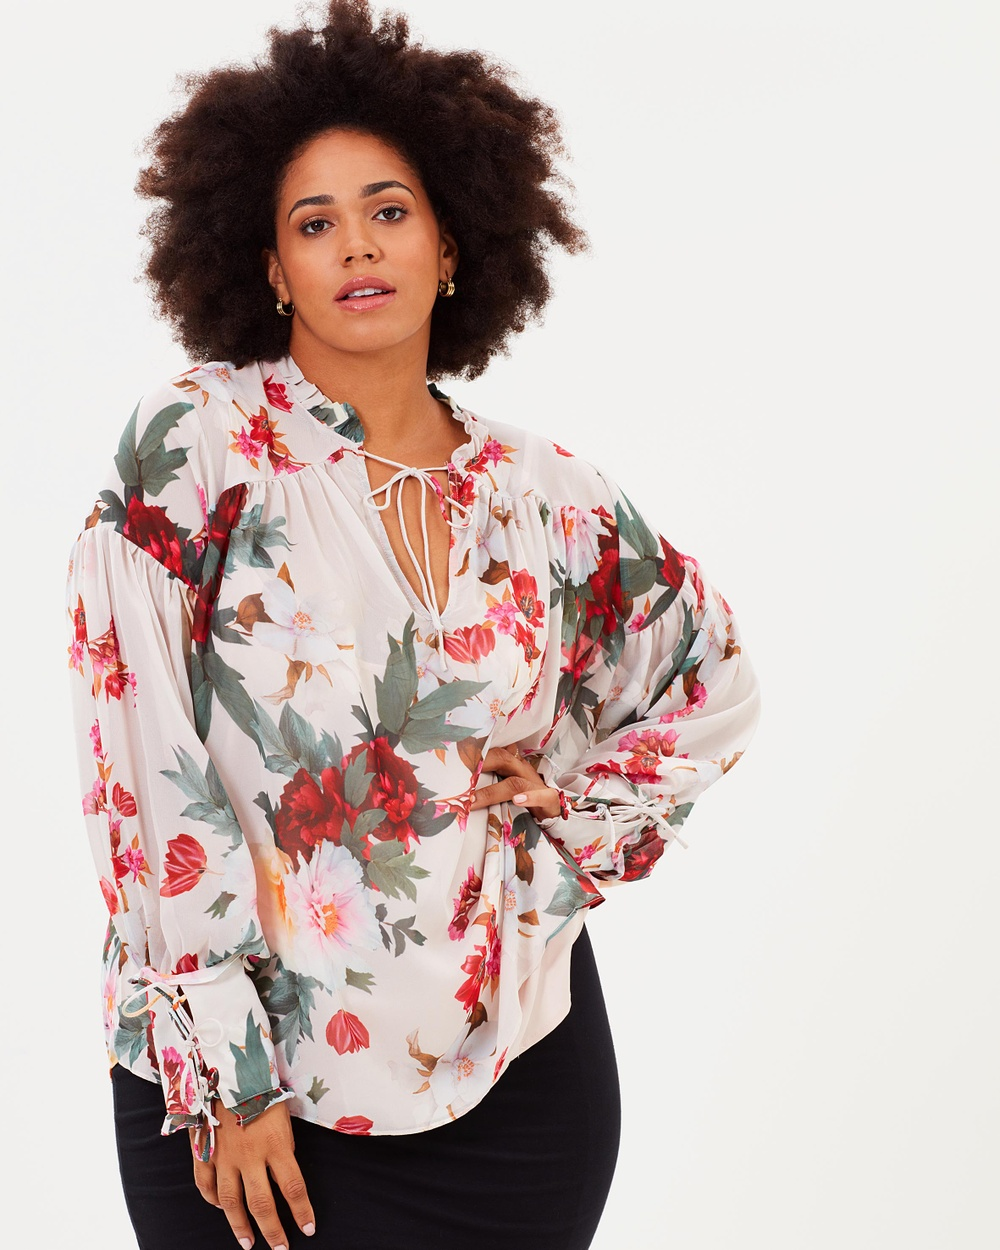 Cooper St CS CURVY Rosa Long Sleeve Top Tops Print CS CURVY Rosa Long Sleeve Top